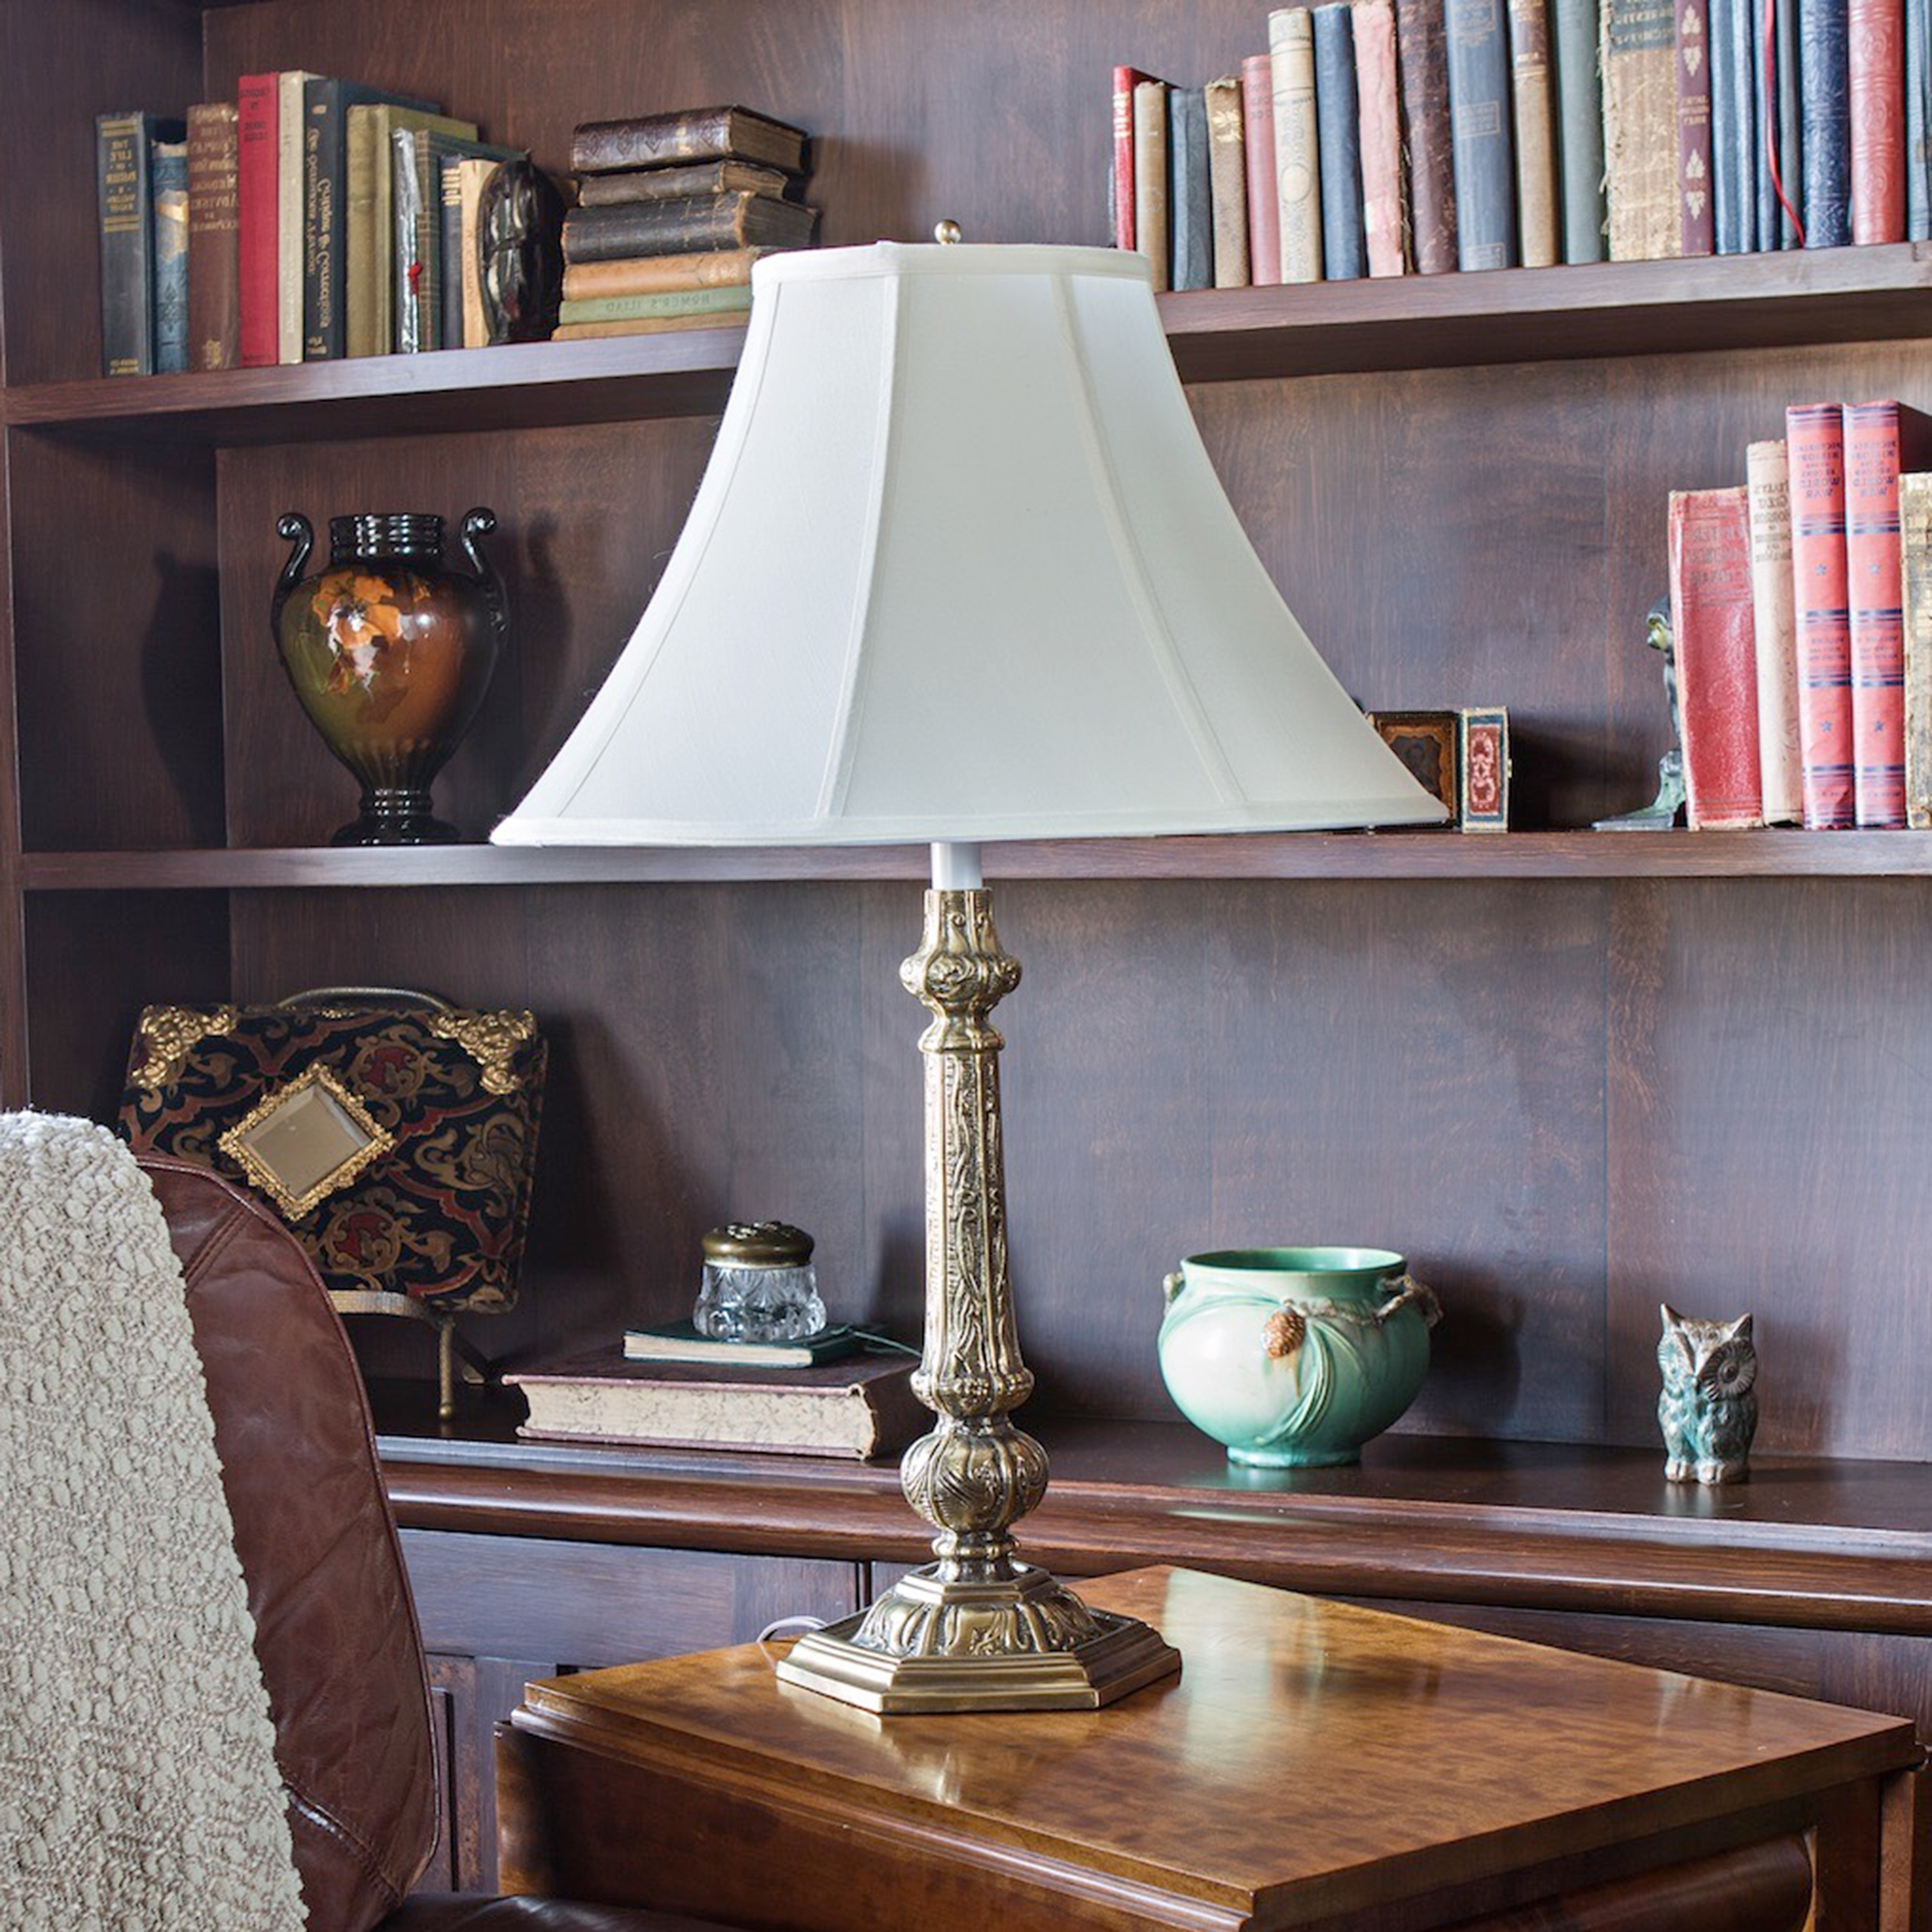 71 Most Ace Table Lamps Touch Battery Operated White Lamp For Living Within Most Current Vintage Living Room Table Lamps (Gallery 3 of 20)